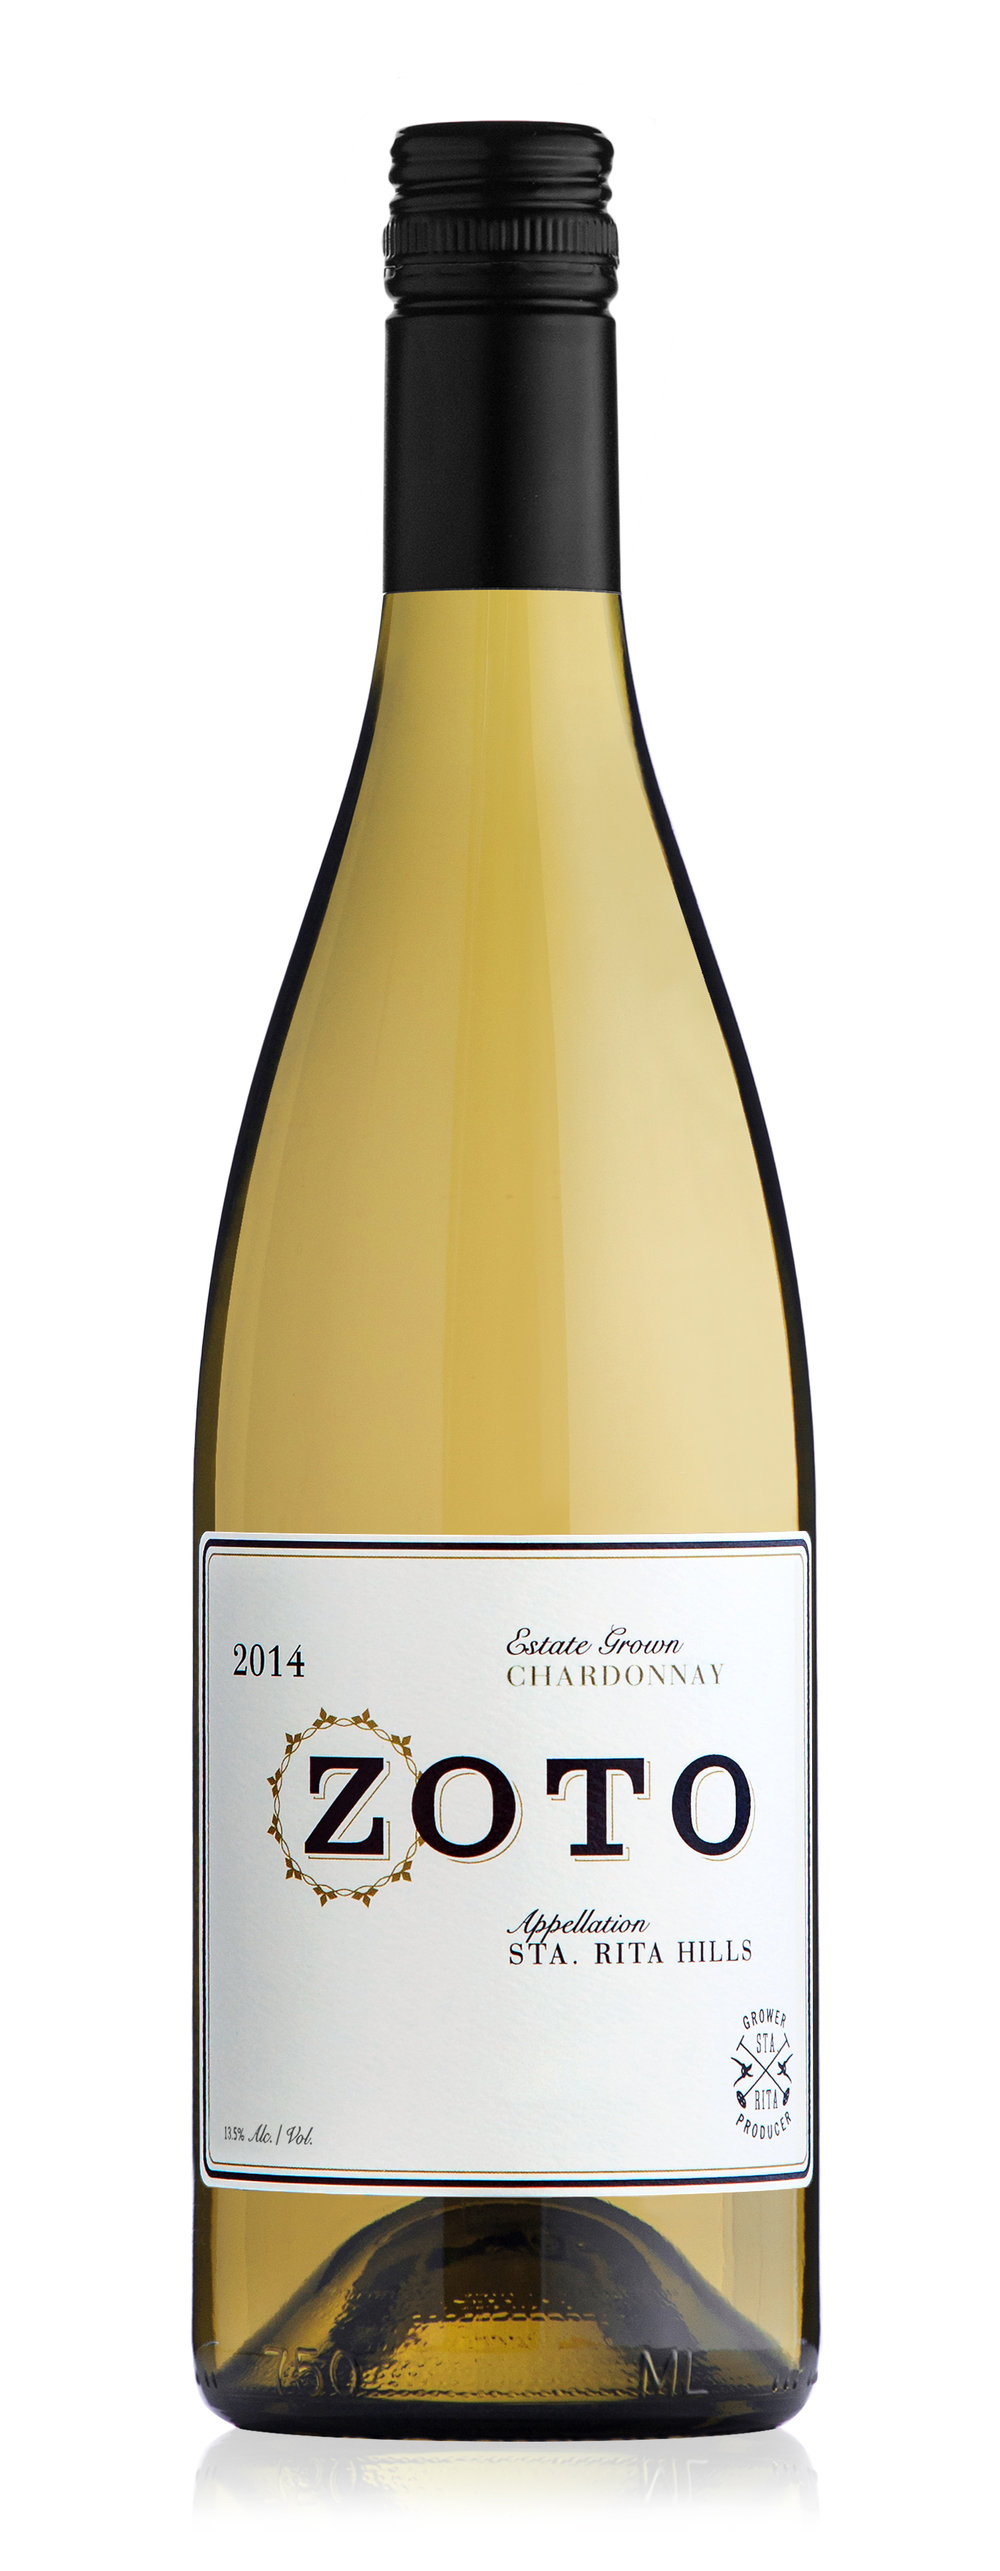 Zotovich.ZOTO.2014.Estate.Chardonnay.Bottle.Shot.High.Res.300dpi.Bottle.Branding.jpg